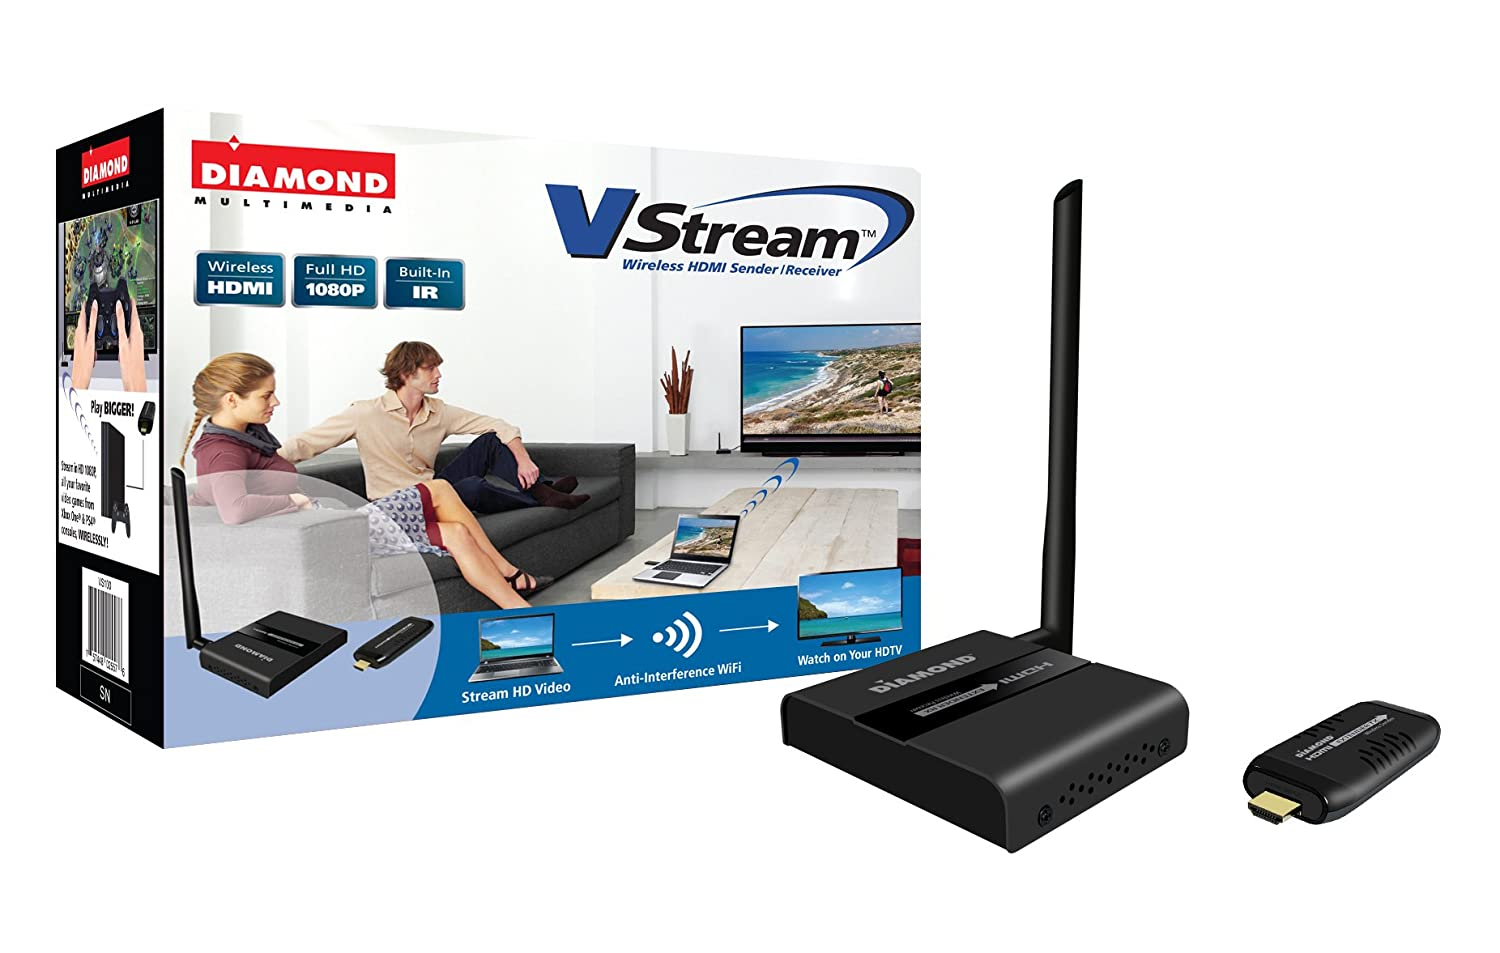 Diamond Wireless HDMI Extender Kit, TV Transmitter & Receiver HD 1080p, Stream Video Content from: Laptops, PC, Cable Box, Satellite Box, Blu-Ray, DVD, PS3, PS4, Xbox 360, Xbox One (VS100)